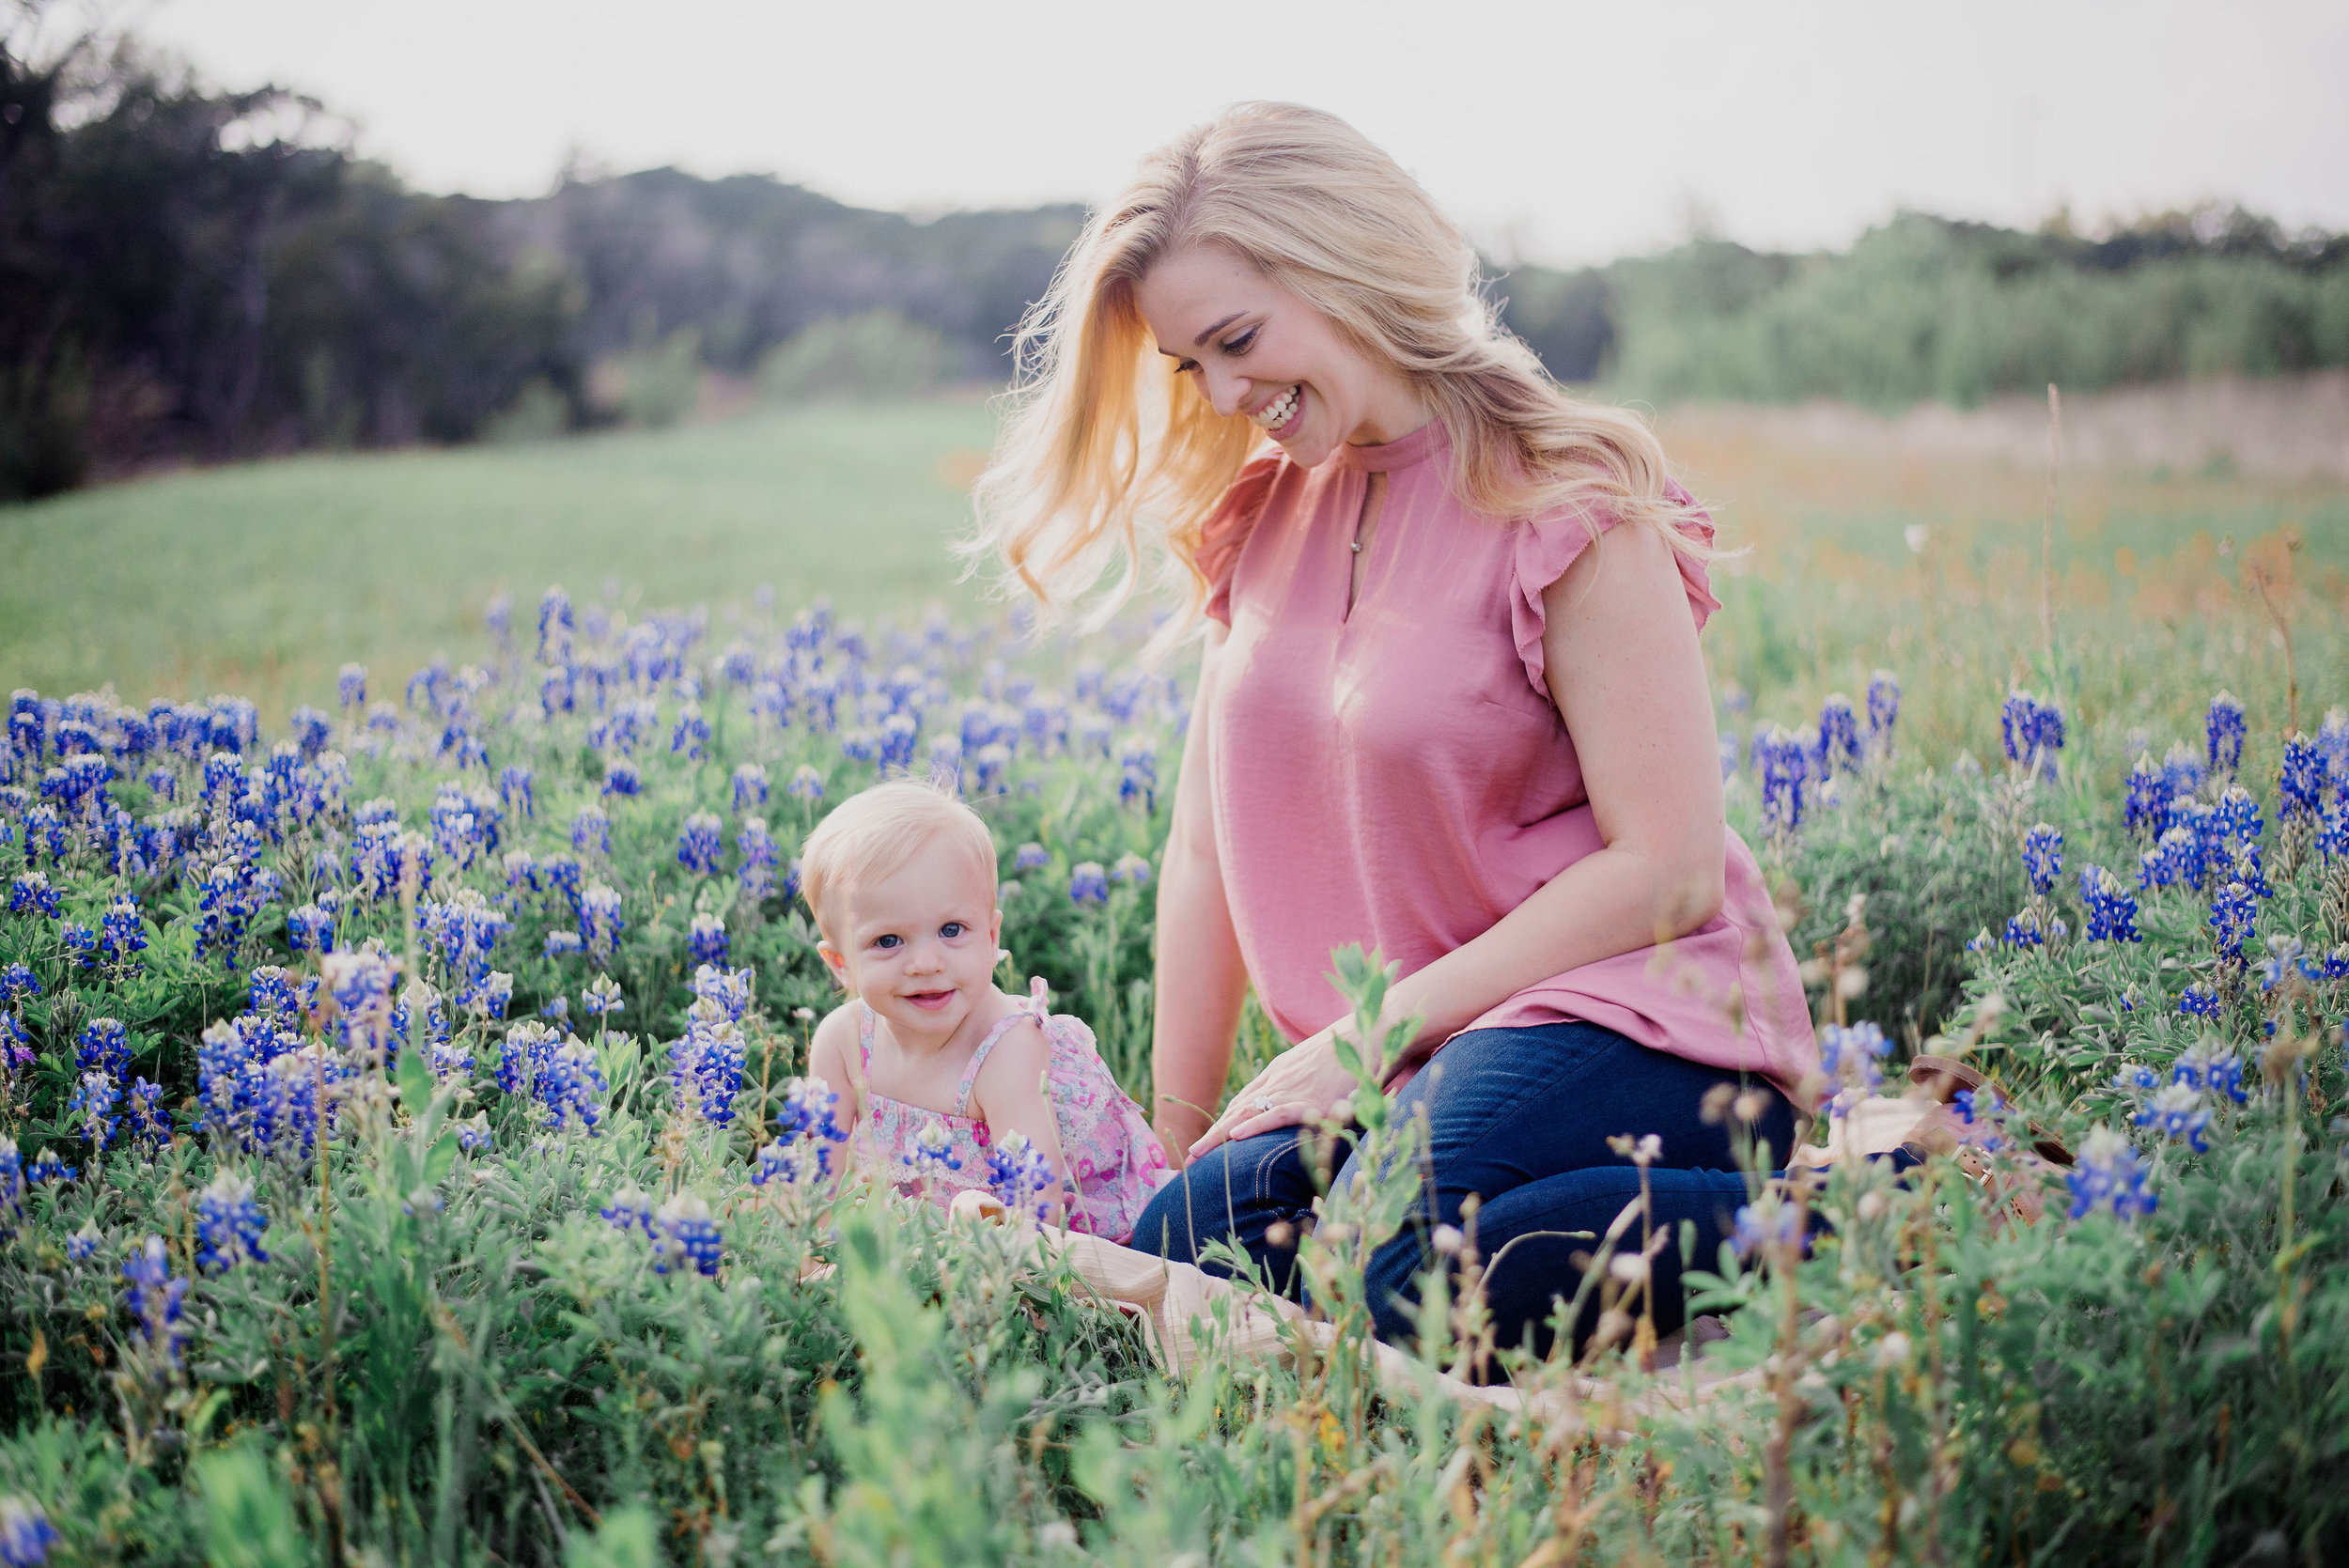 Austin Portrait Photographer First Birthday Session Texas Wildflowers Bluebonnets018.jpg